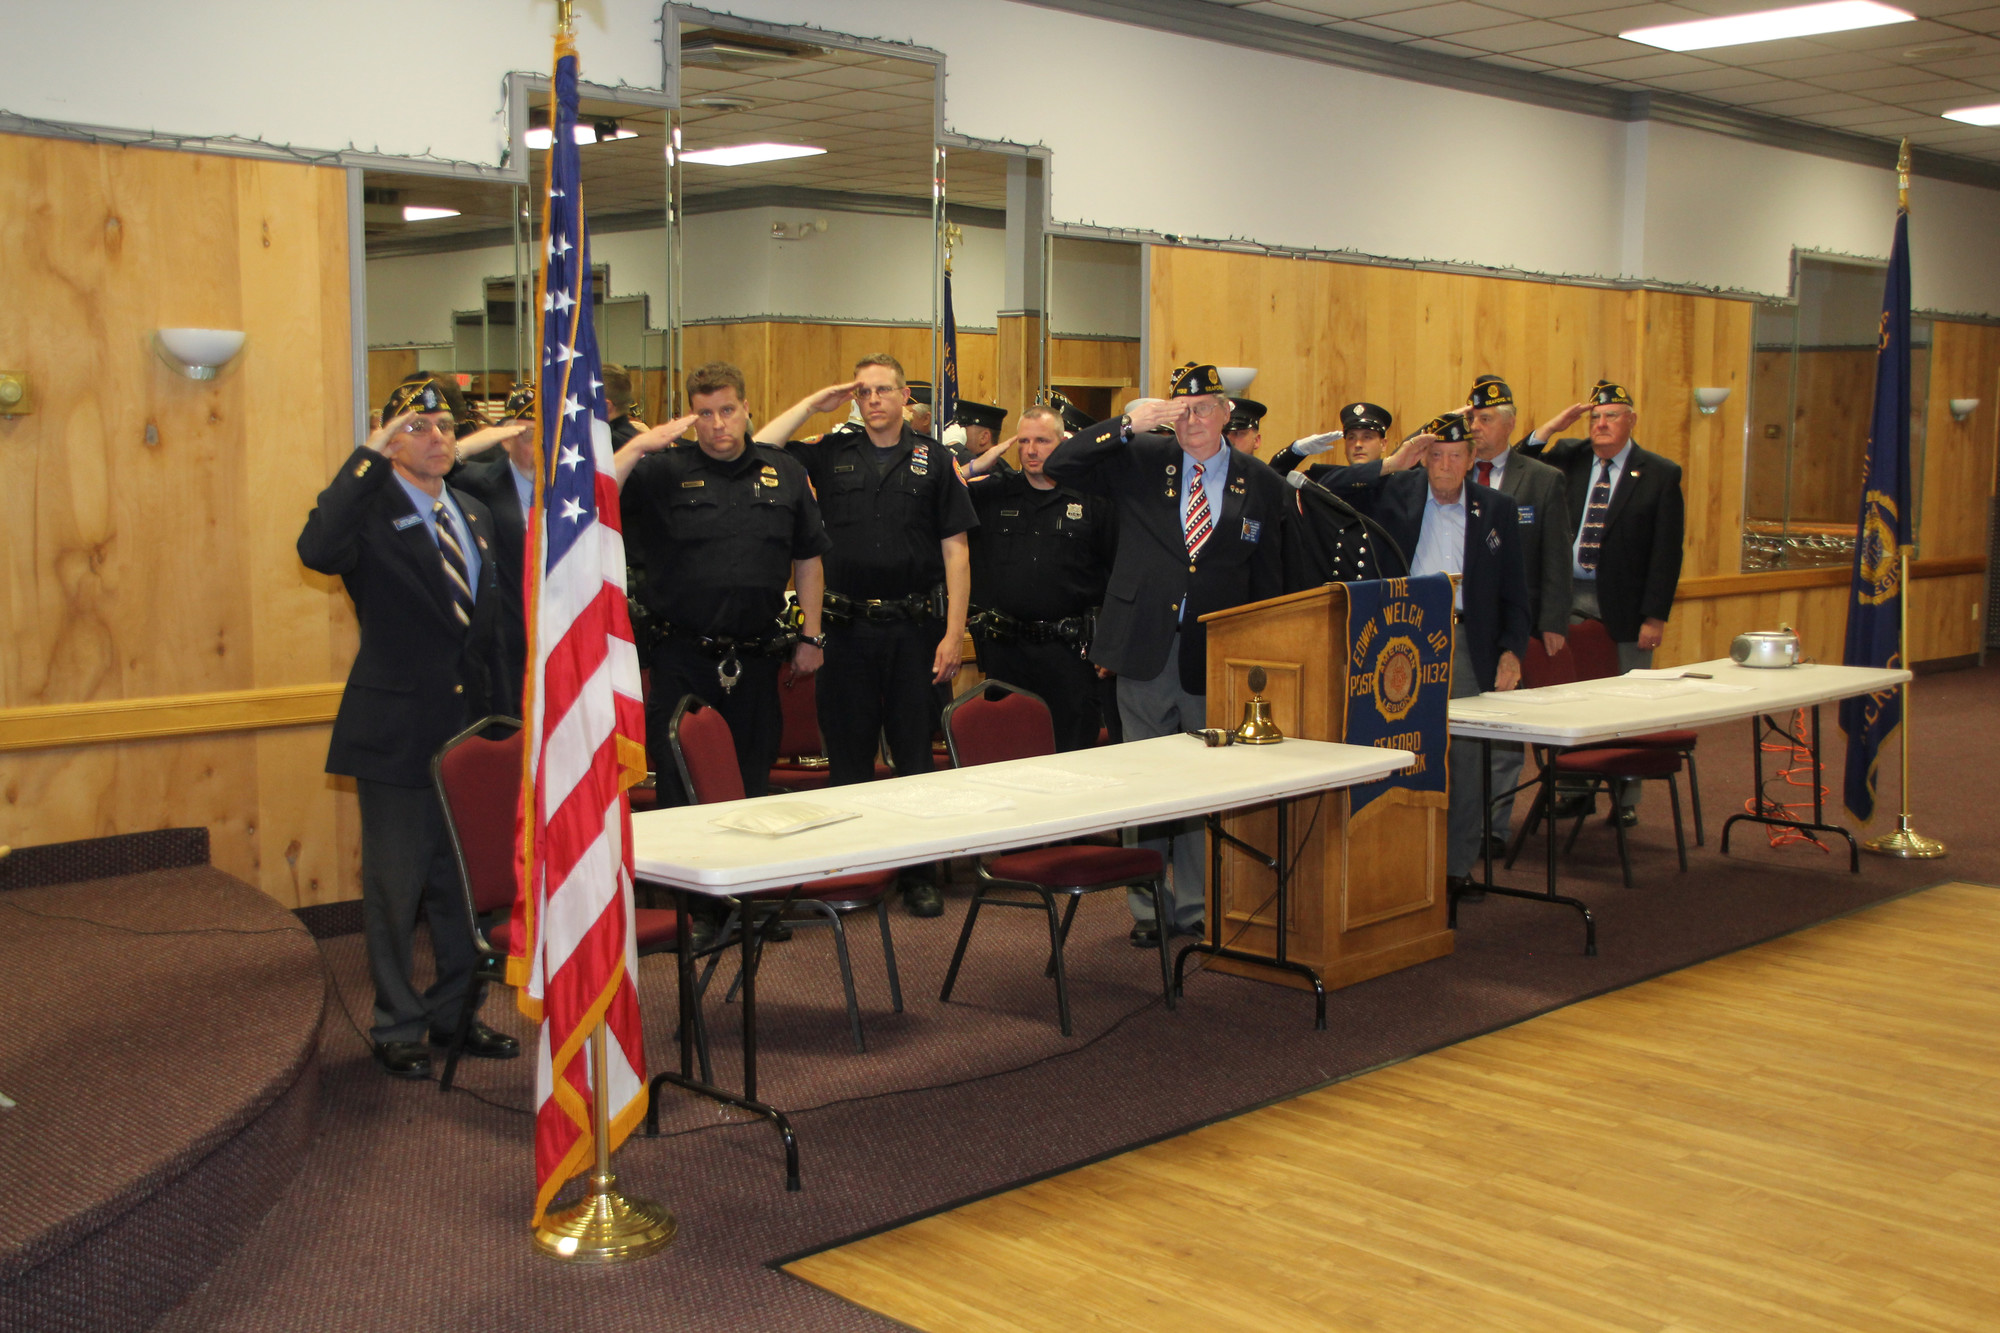 Members of the American Legion and honorees saluted the flag during the closing ceremony at Law and Order Night on May 20.